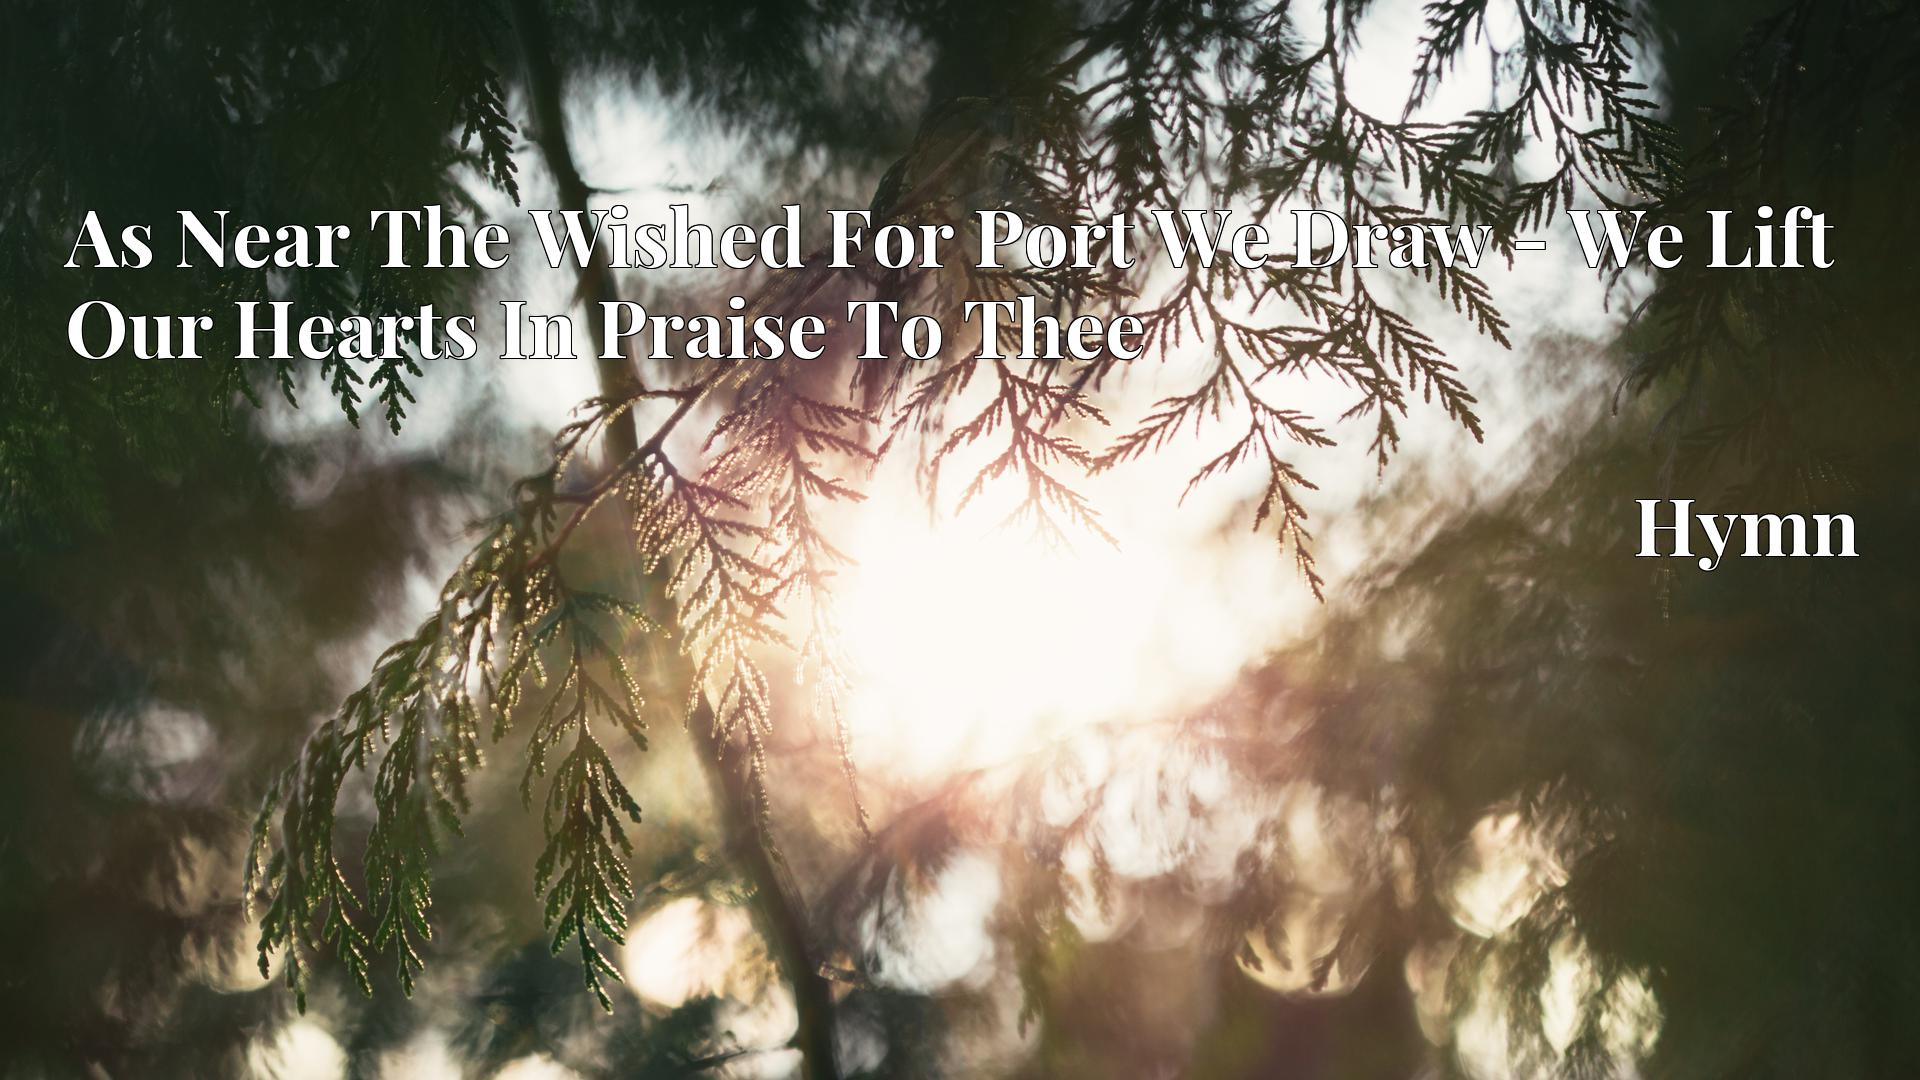 As Near The Wished For Port We Draw - We Lift Our Hearts In Praise To Thee - Hymn